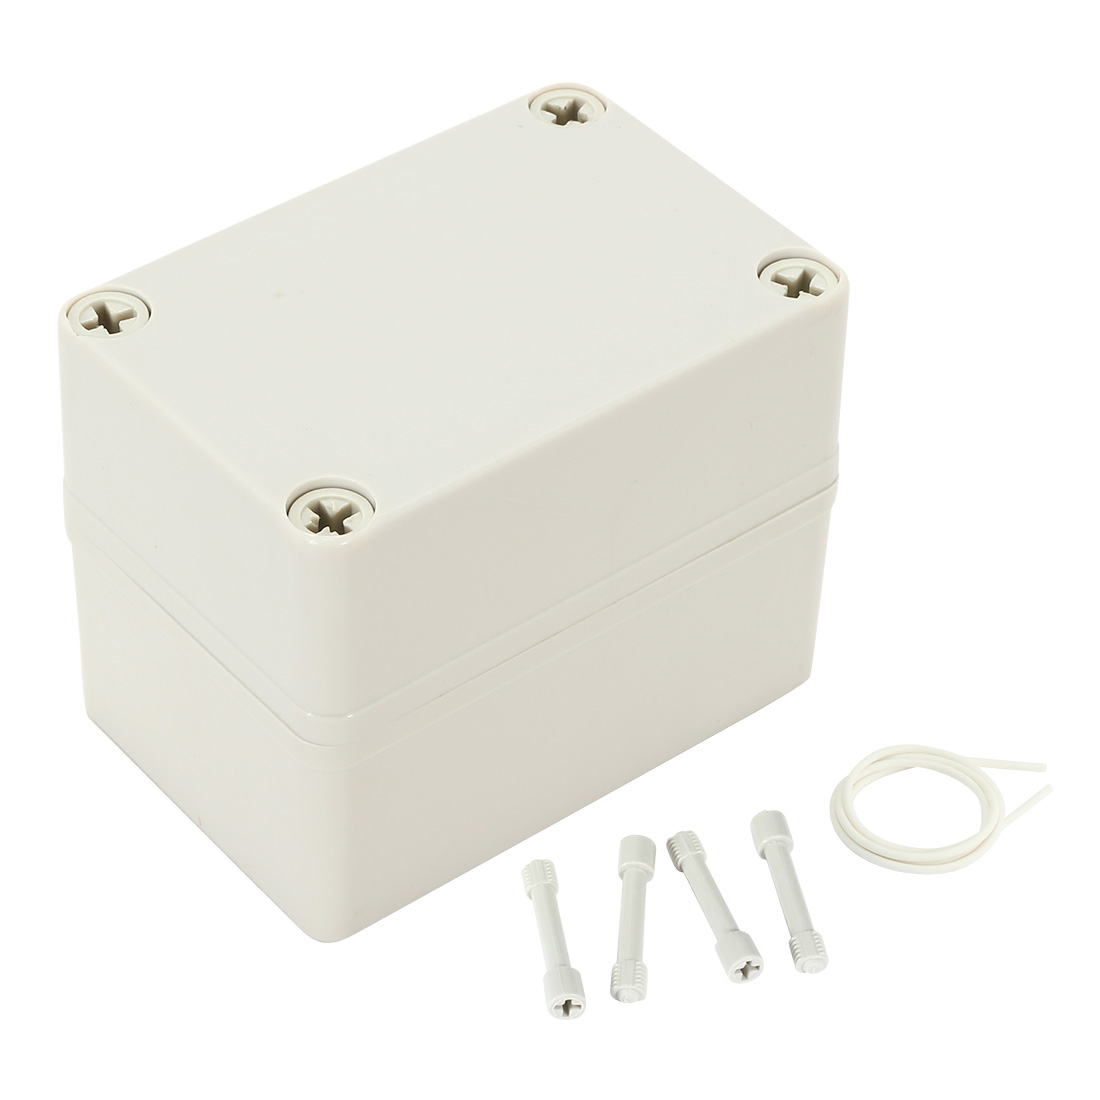 "3.74""x2.56""x2.95"" ABS Junction Box Universal Project Enclosure"